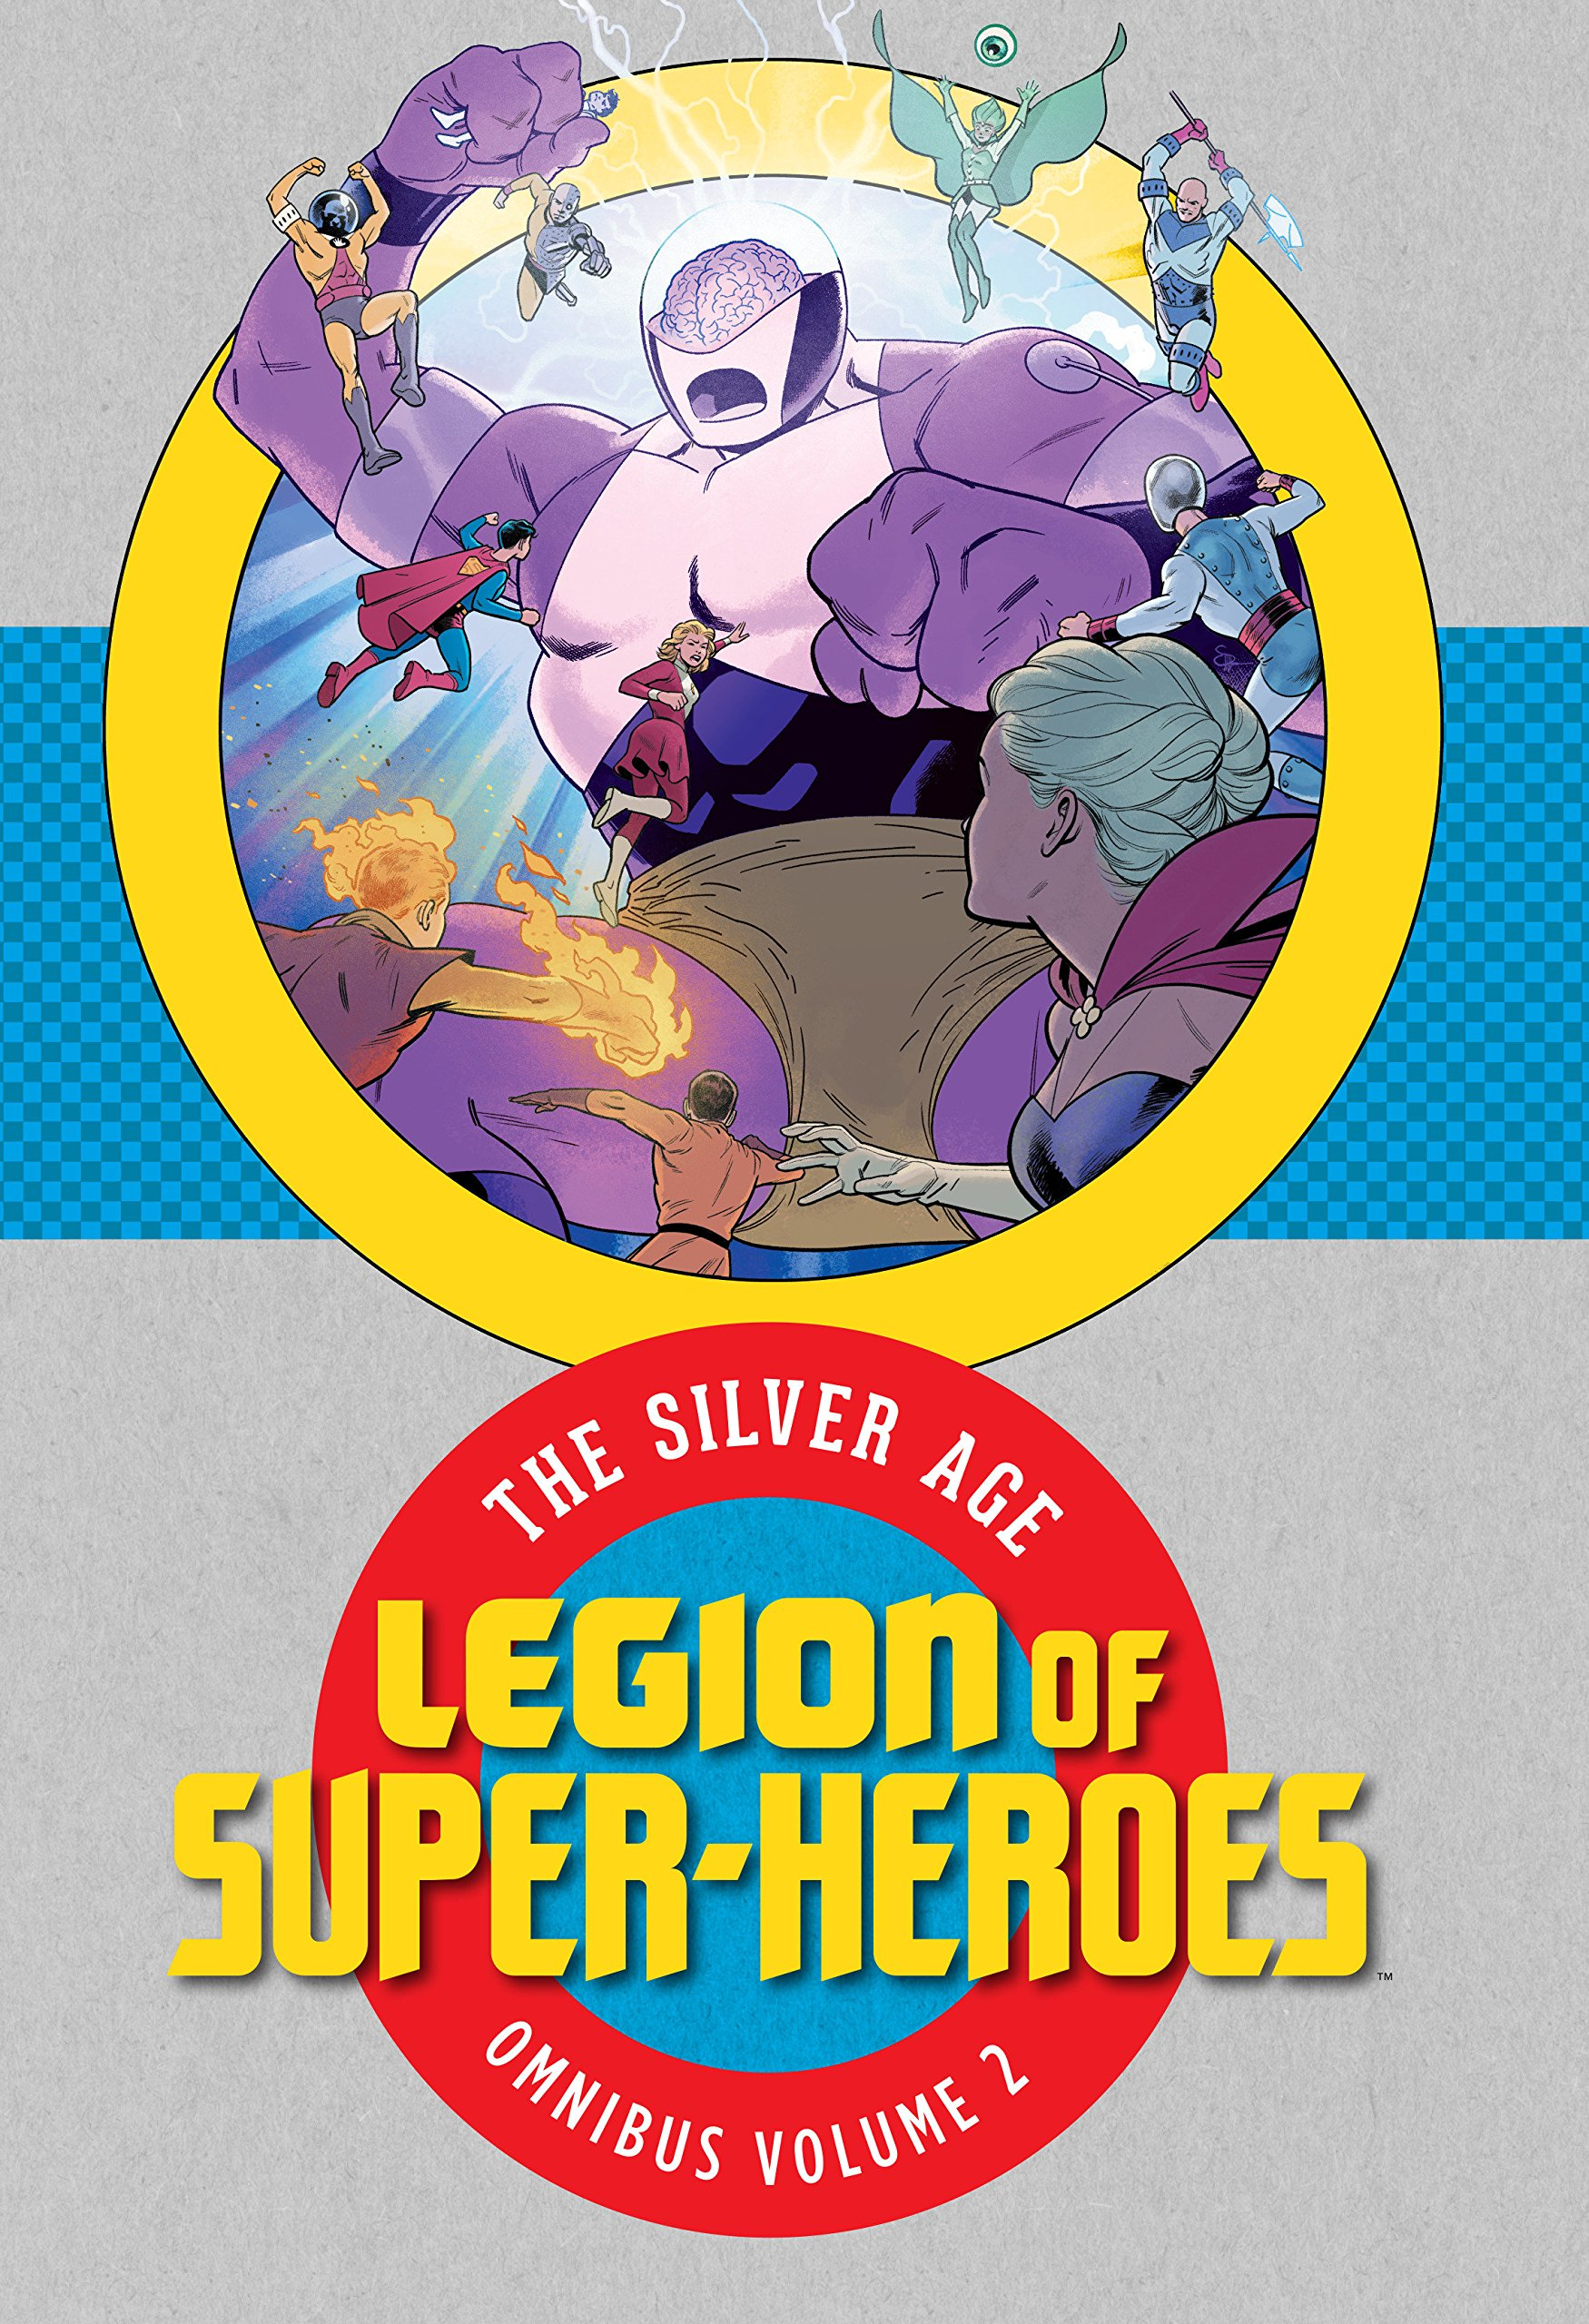 Legion of Super-Heroes: The Silver Age Omnibus Vol. 2 by DC Comics